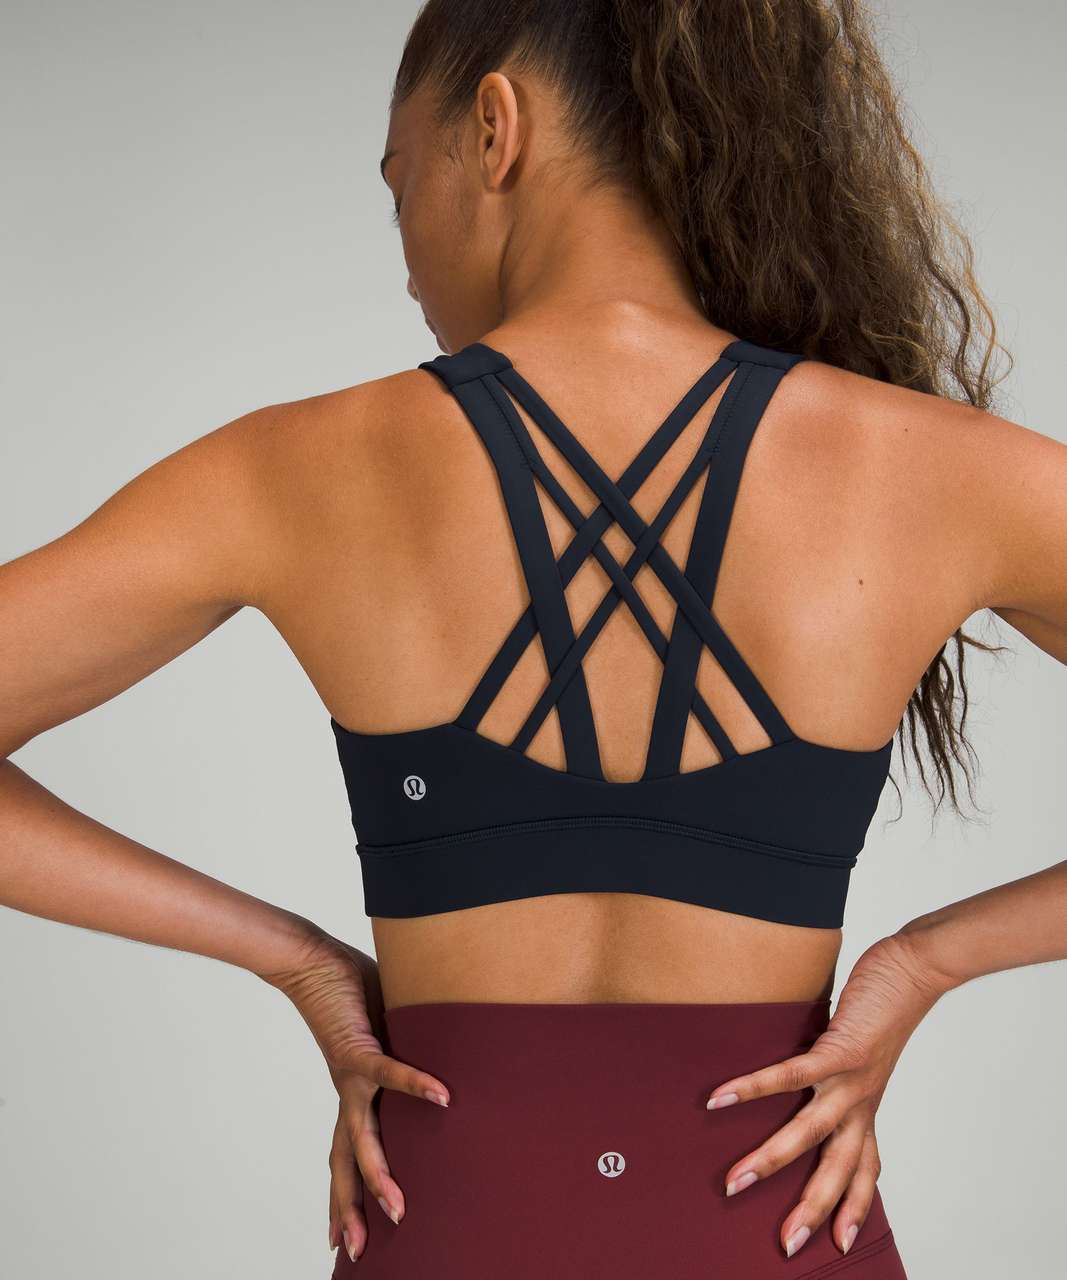 Lululemon Free To Be Elevated Bra *Light Support, DD/E Cup - True Navy